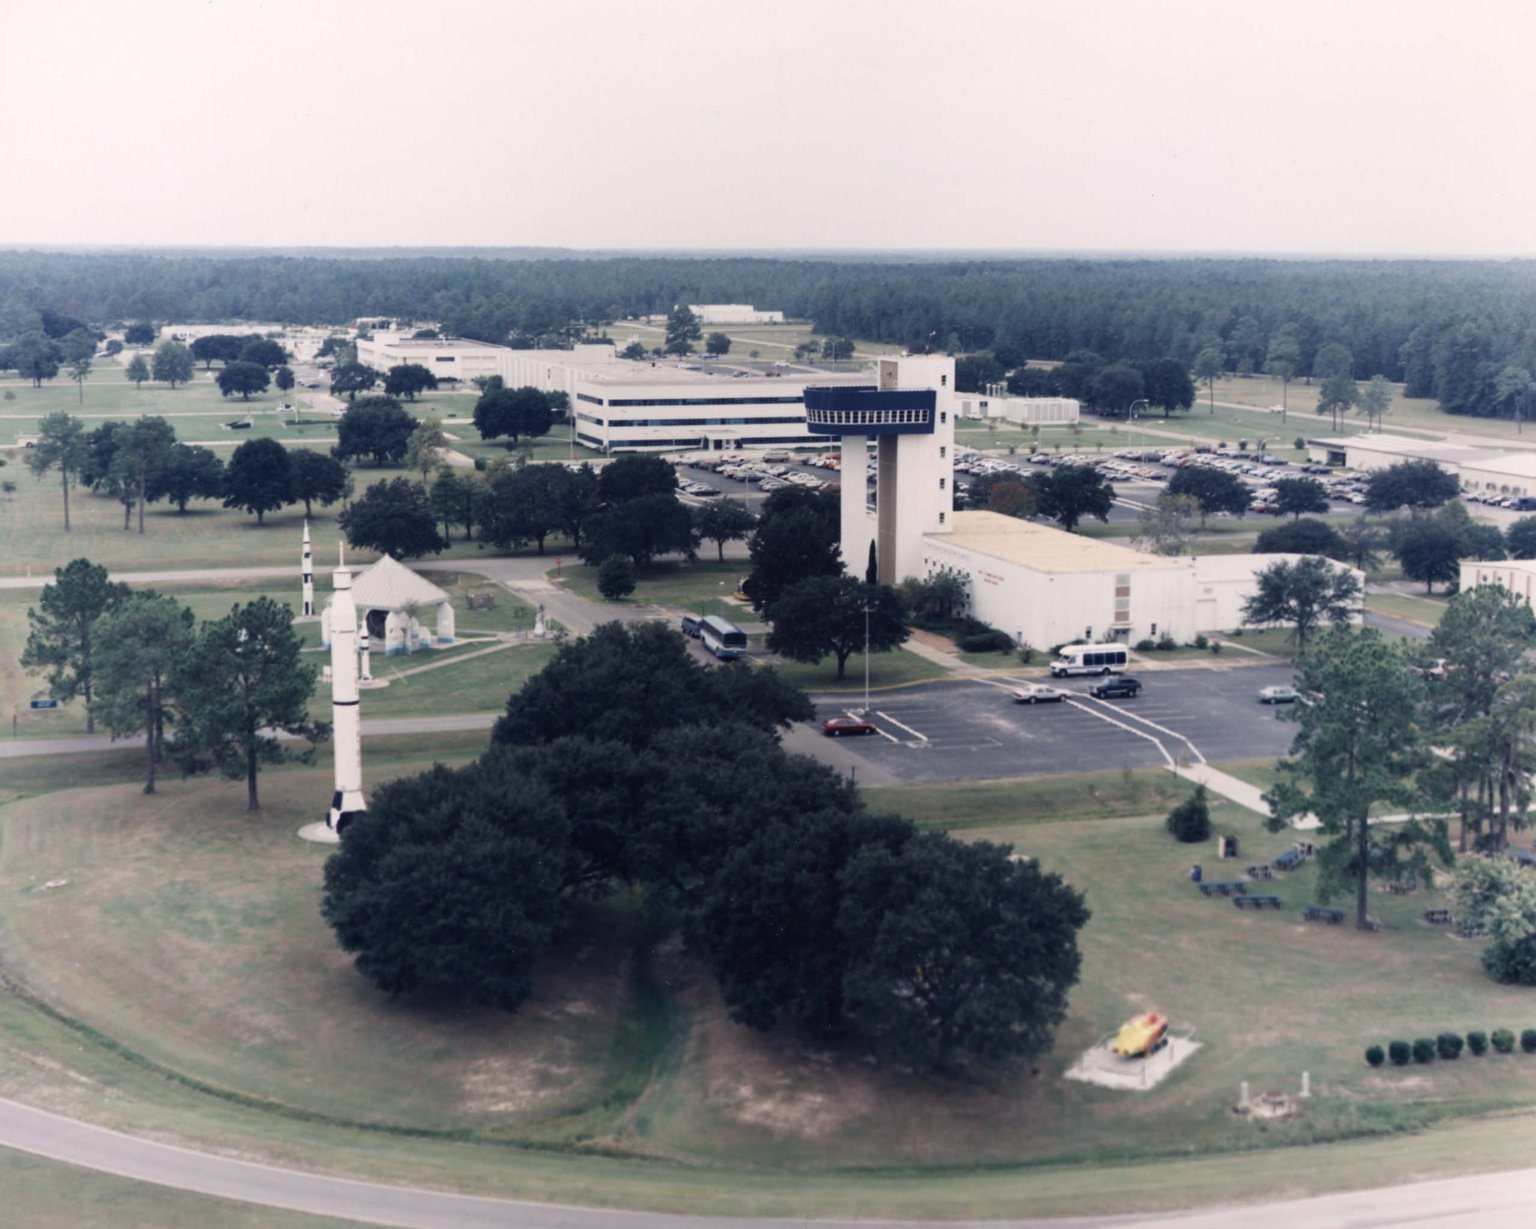 StenniSphere, the Stennis Visitor Center